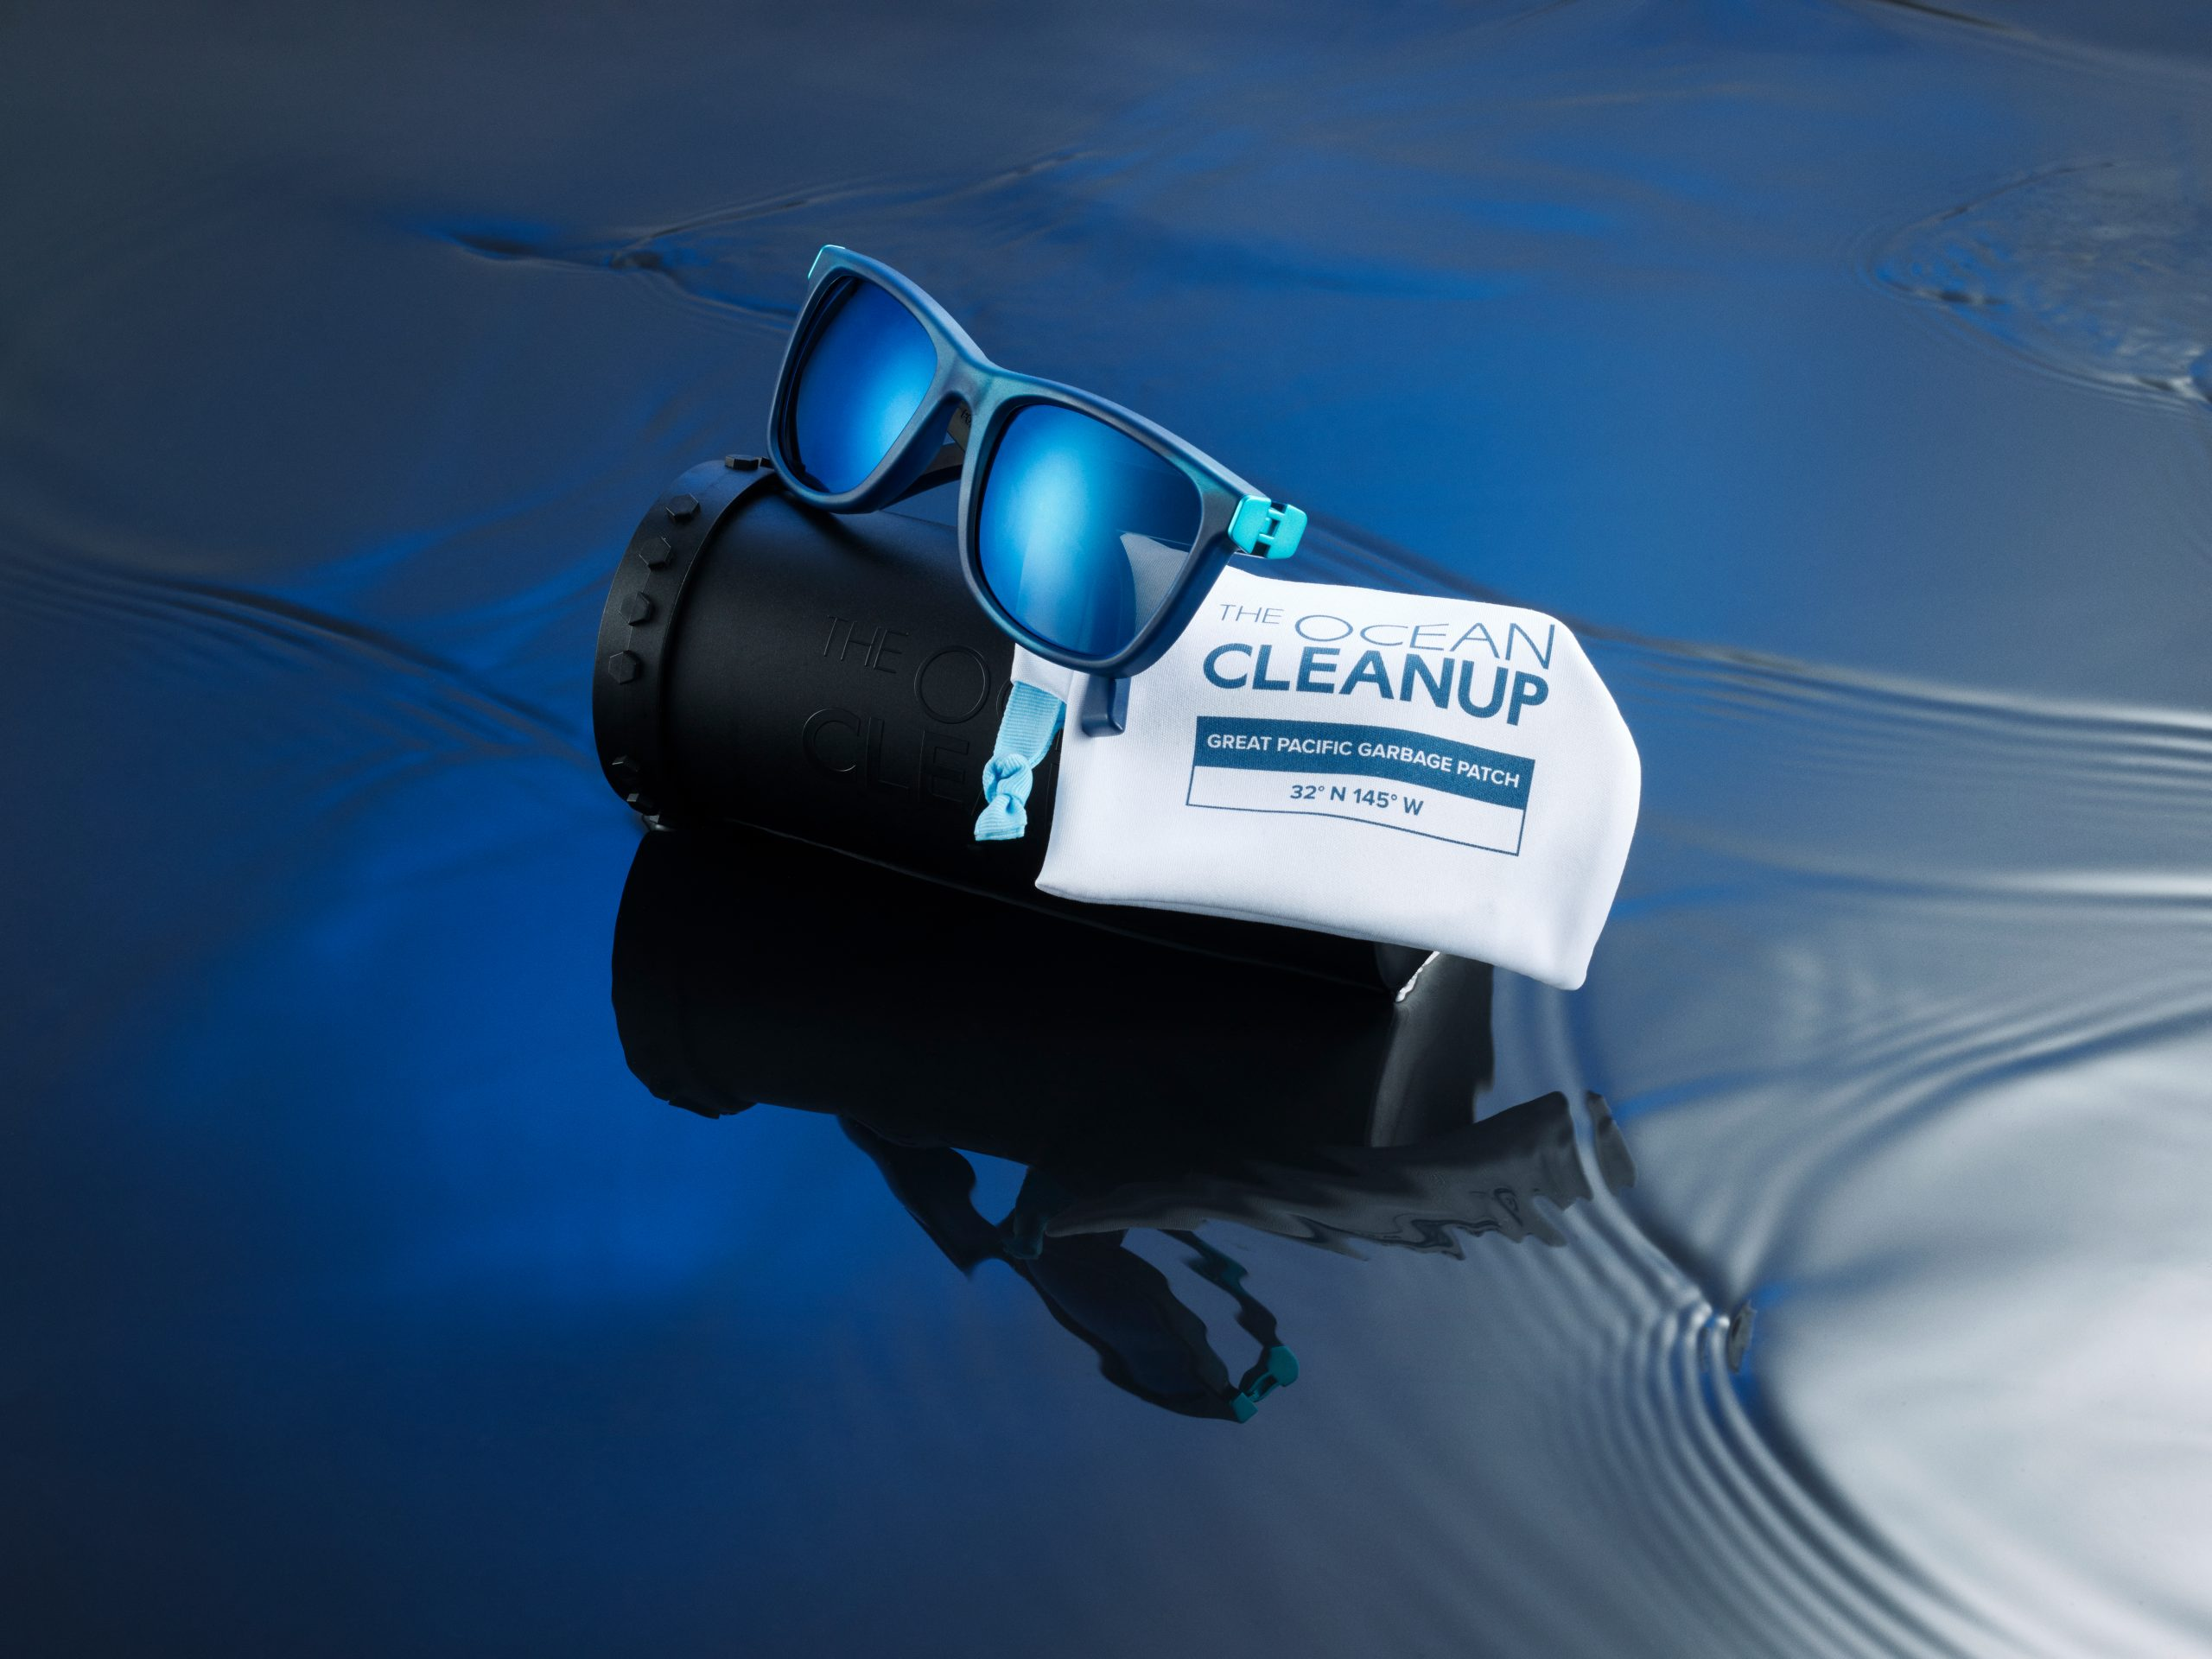 TheOceanCleanup Sunglasses HiRes 5.1 scaled - floomedia